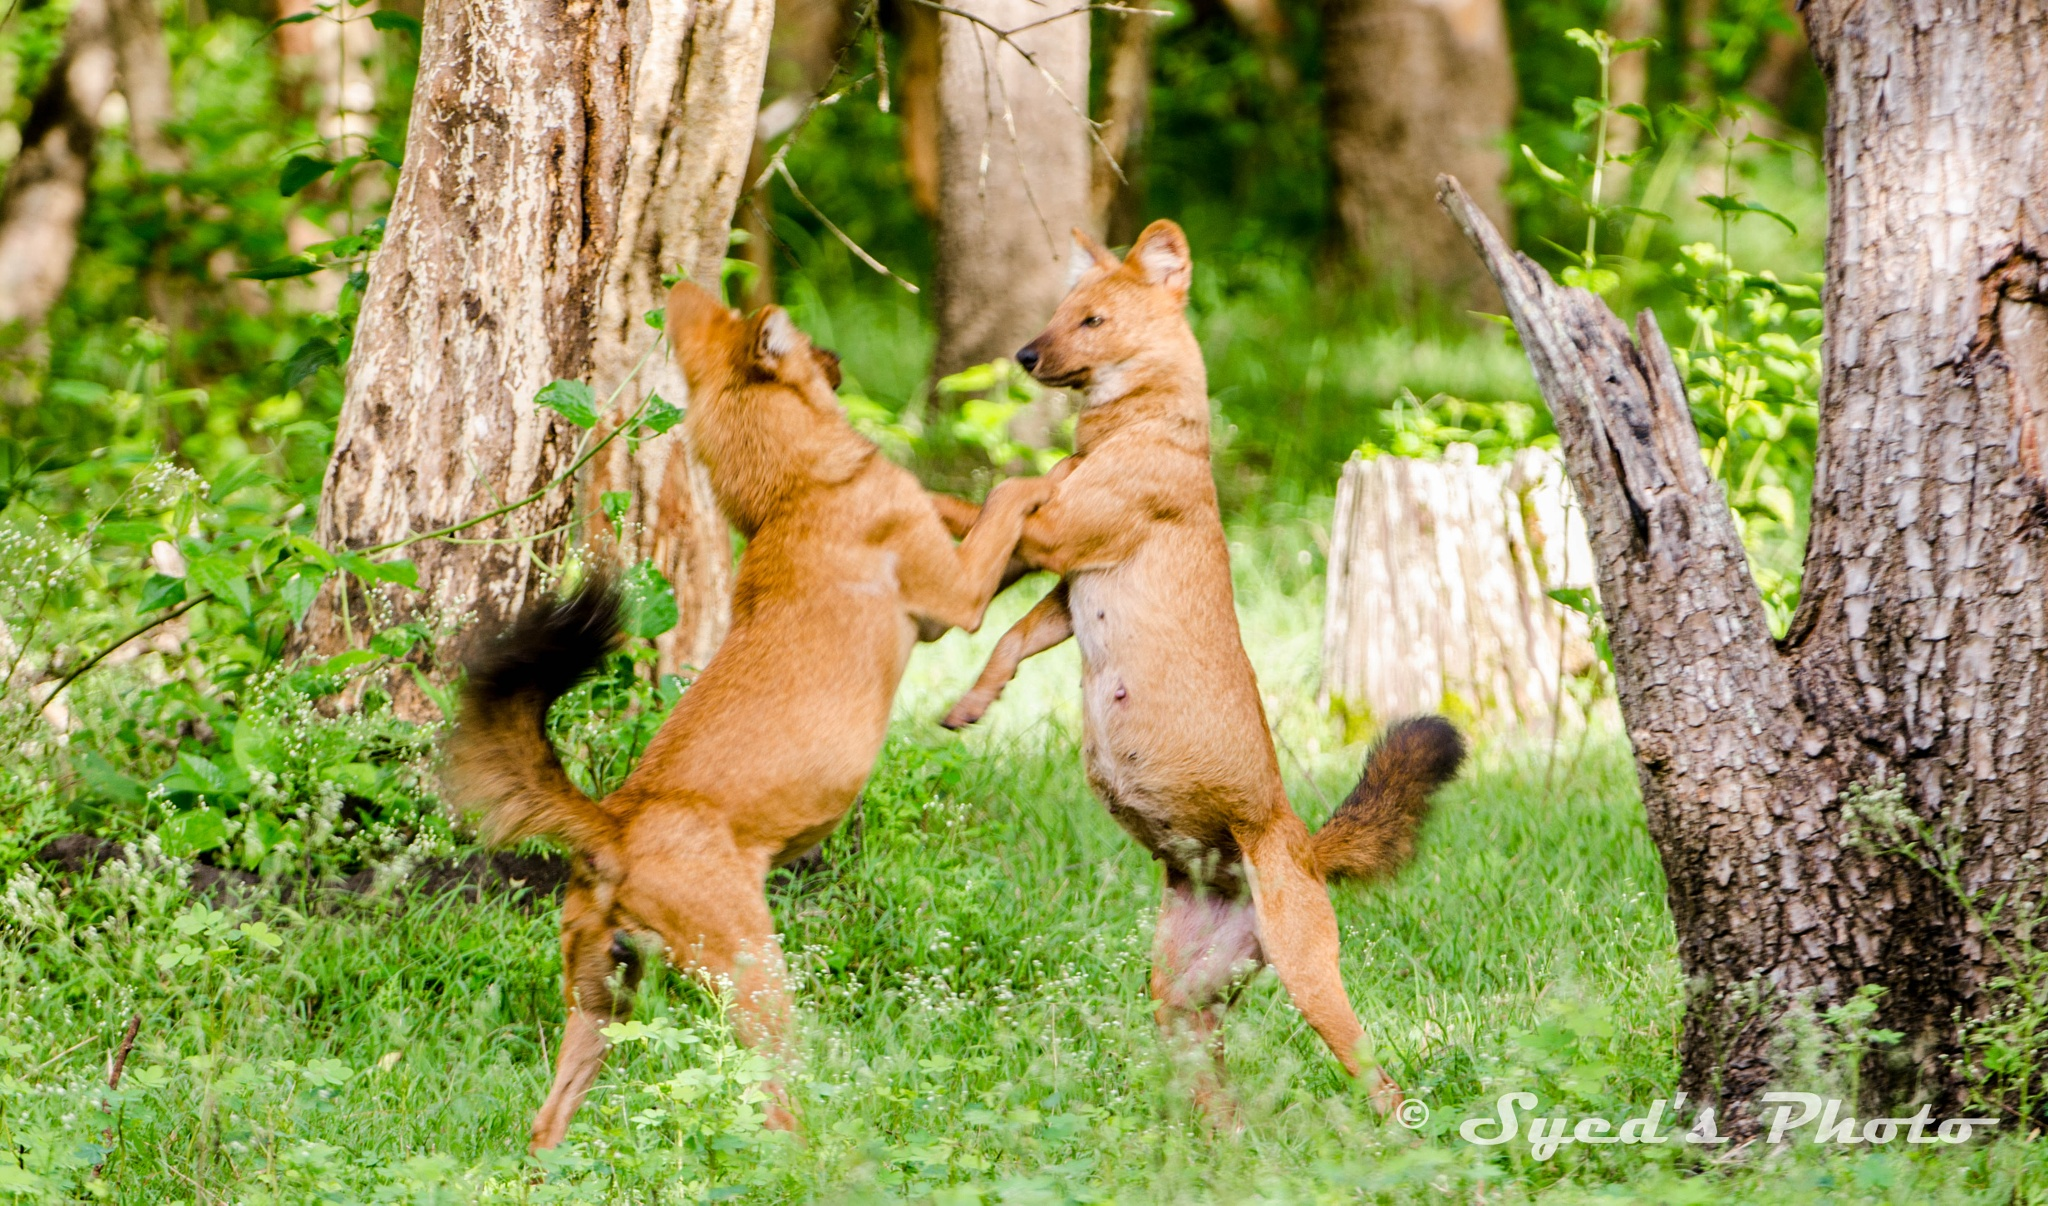 Dhole by Syed Ahmed